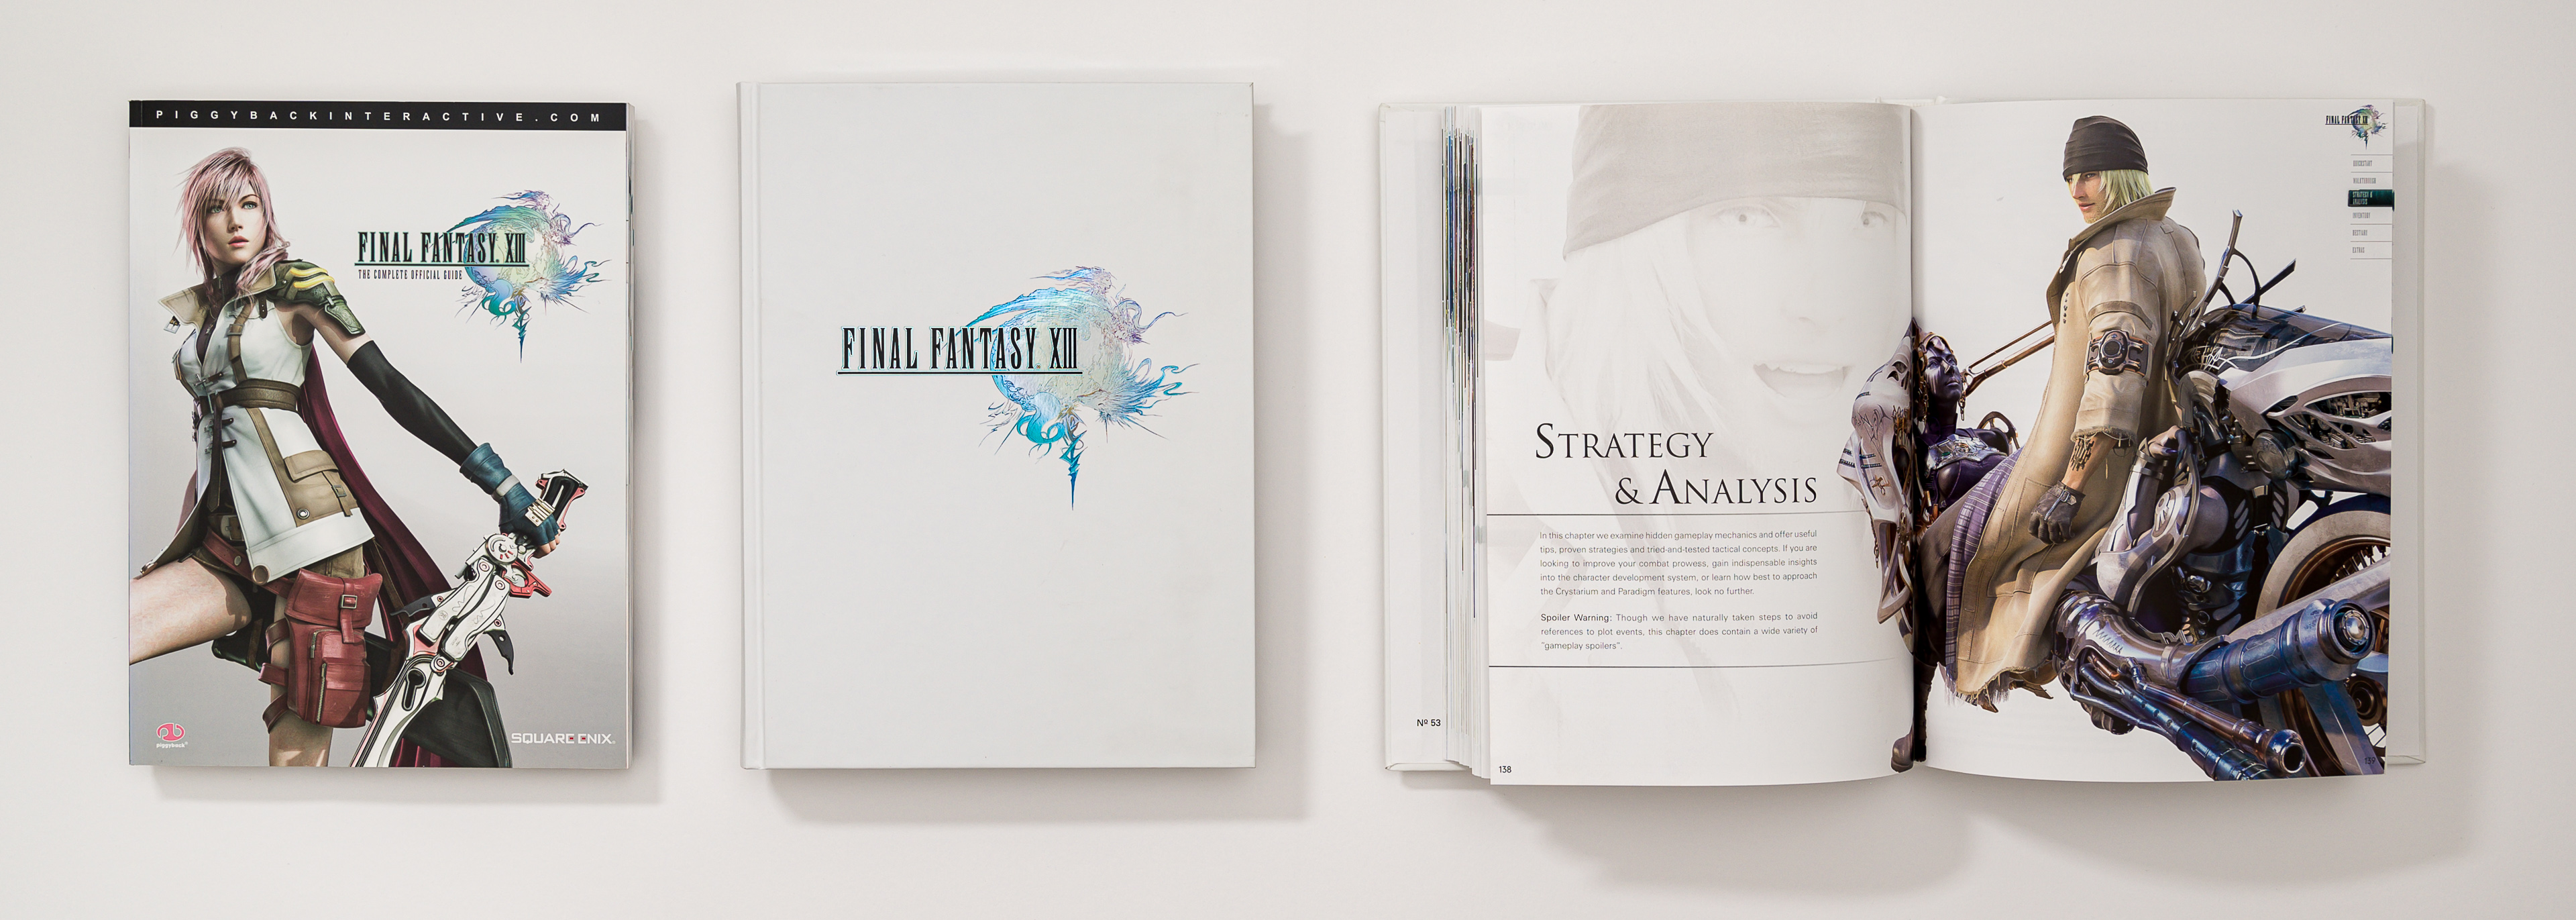 FFXIII_UE_GUIDE-COLLAGE